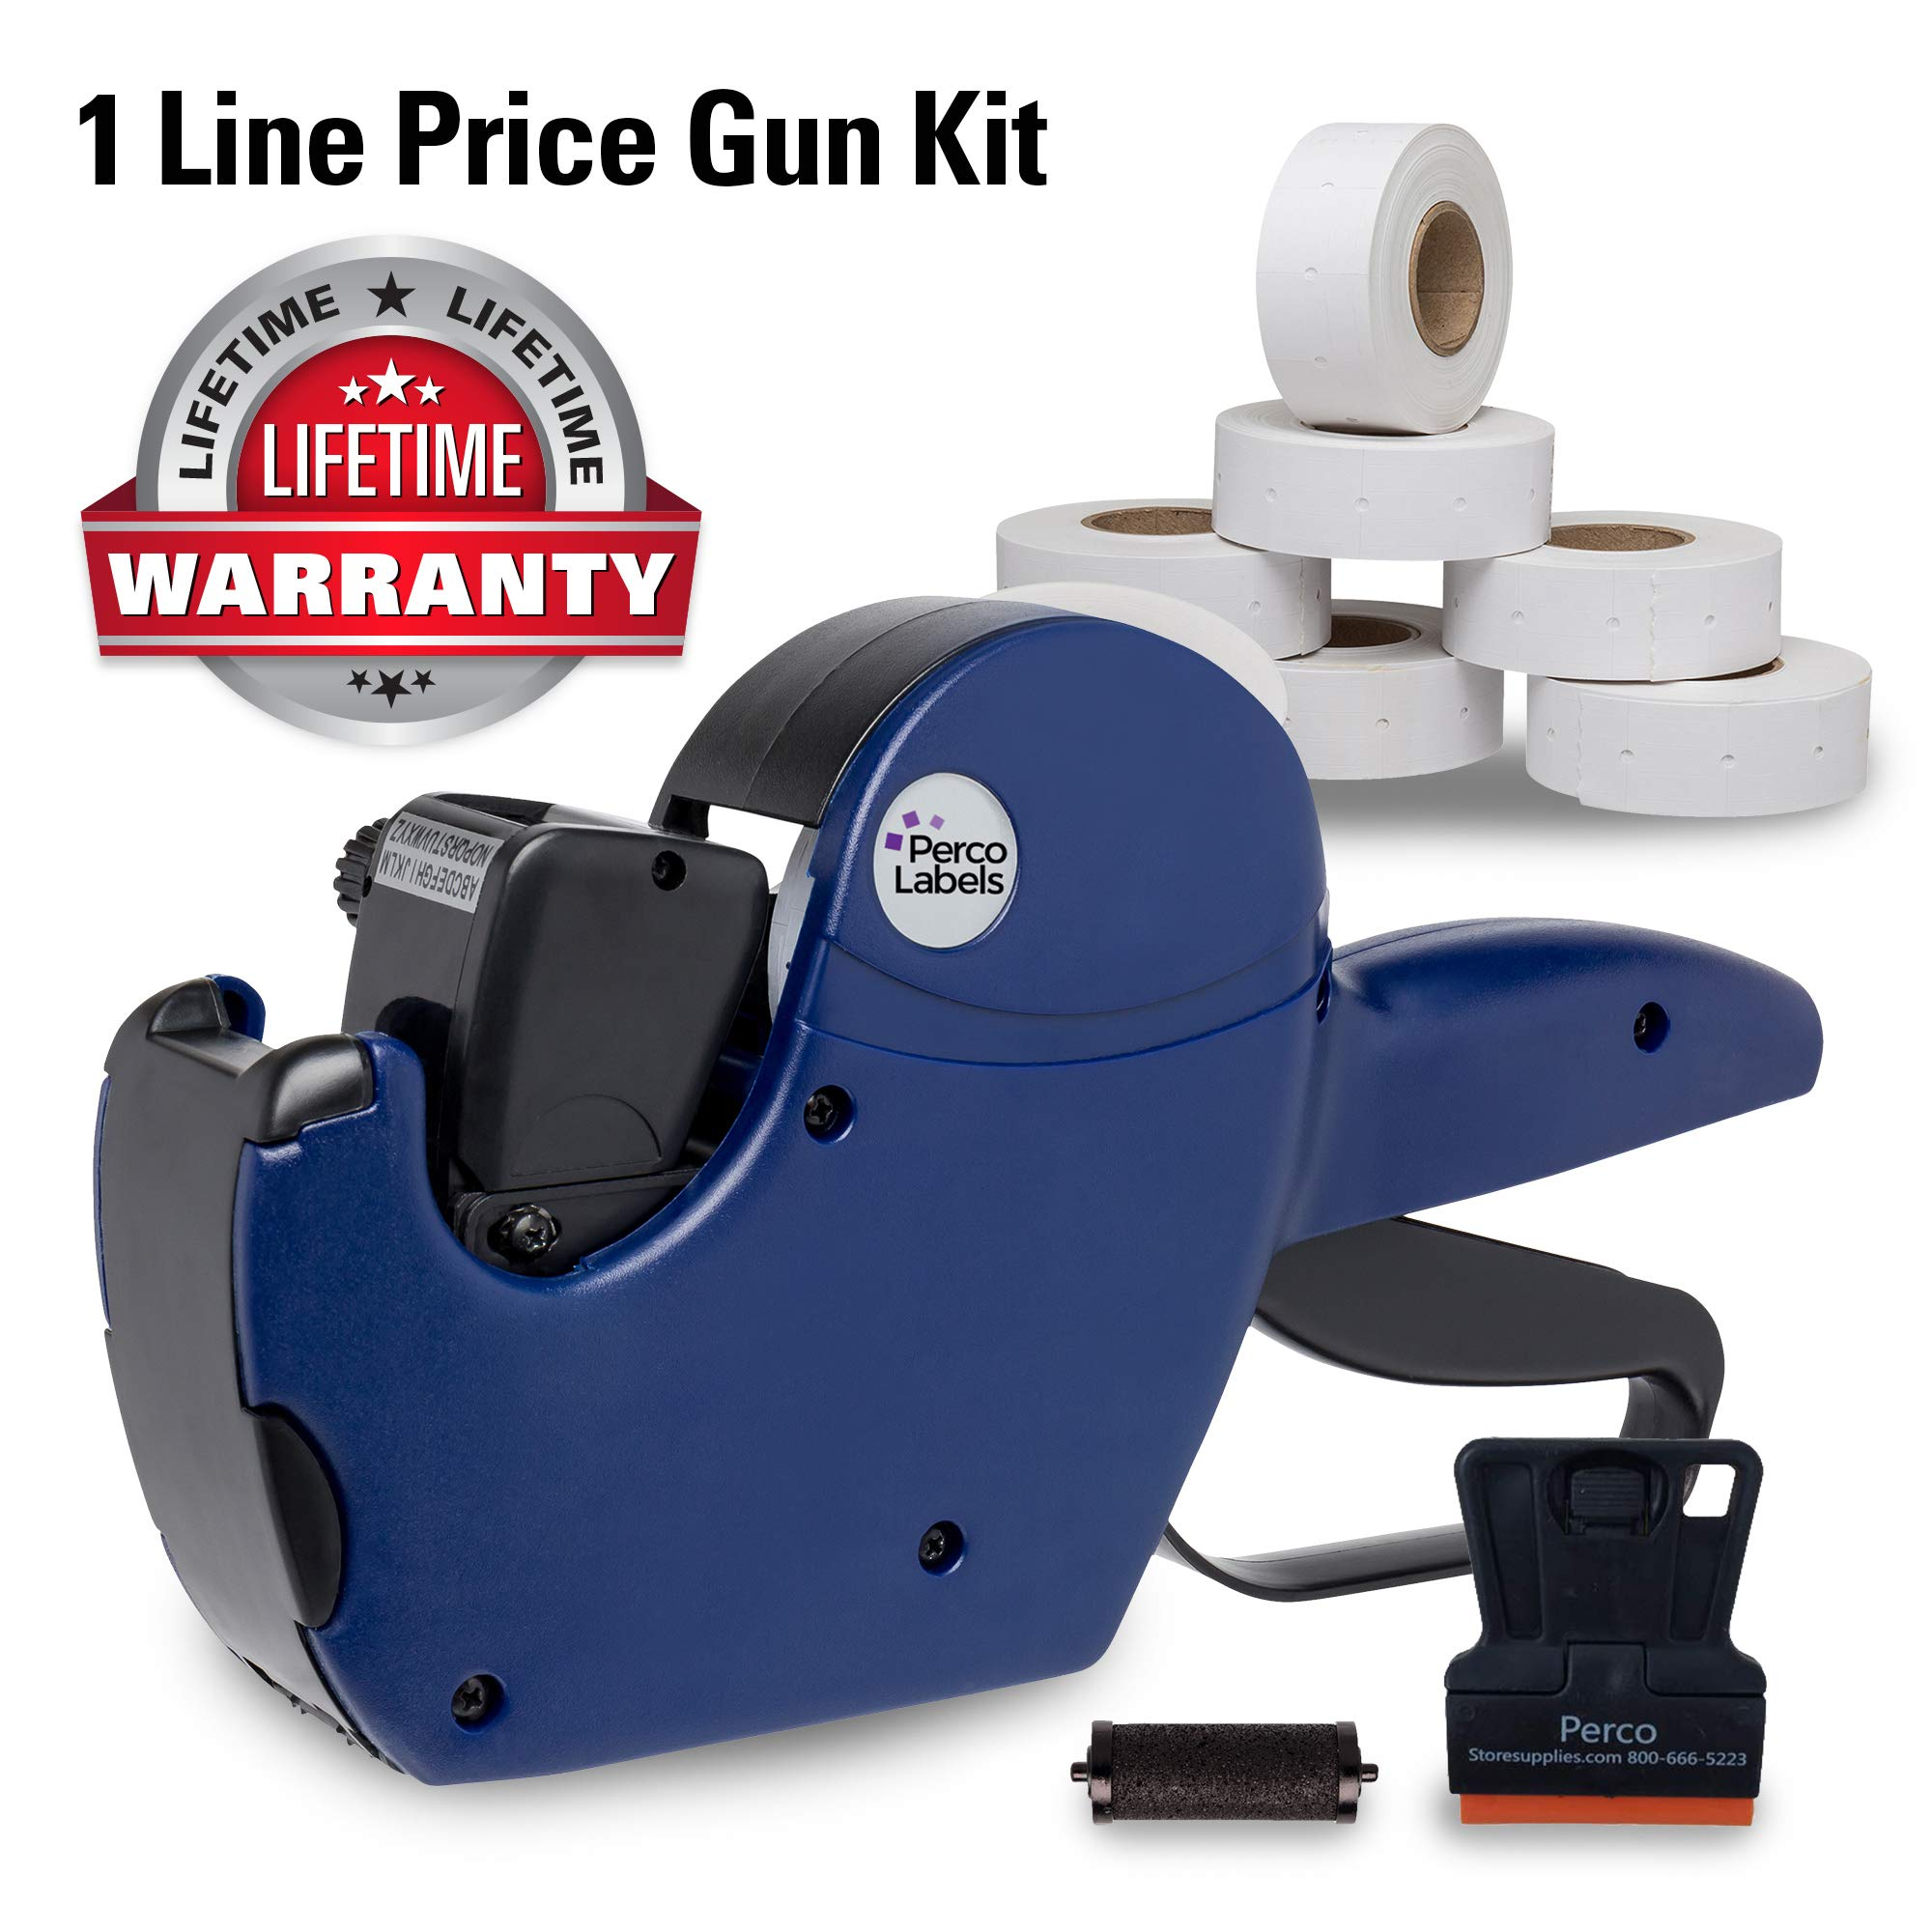 Perco 1 Line Price Gun with Labels Kit - Includes 1 Line Pricing Gun, 10,000 White Labels, with Pre-Loaded Inker by Perco